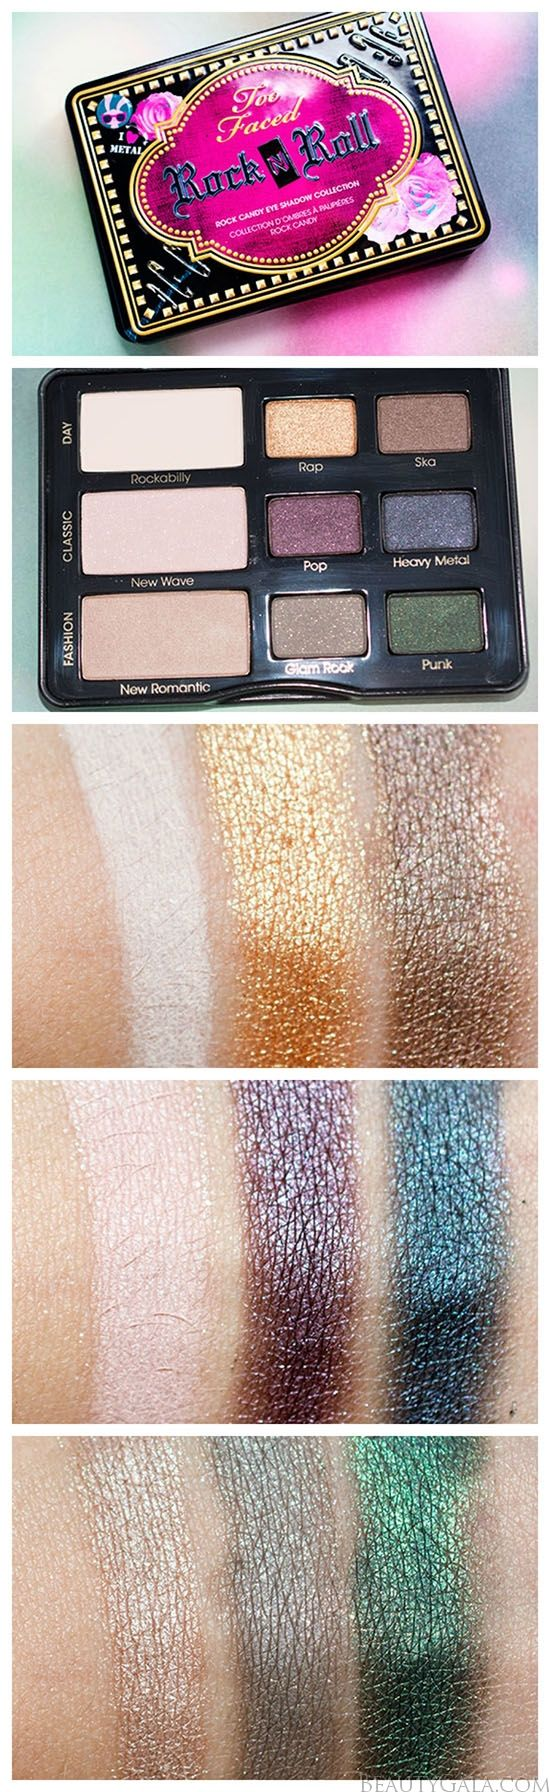 Too Faced Rock n Roll Eyeshadow Palette Swatches